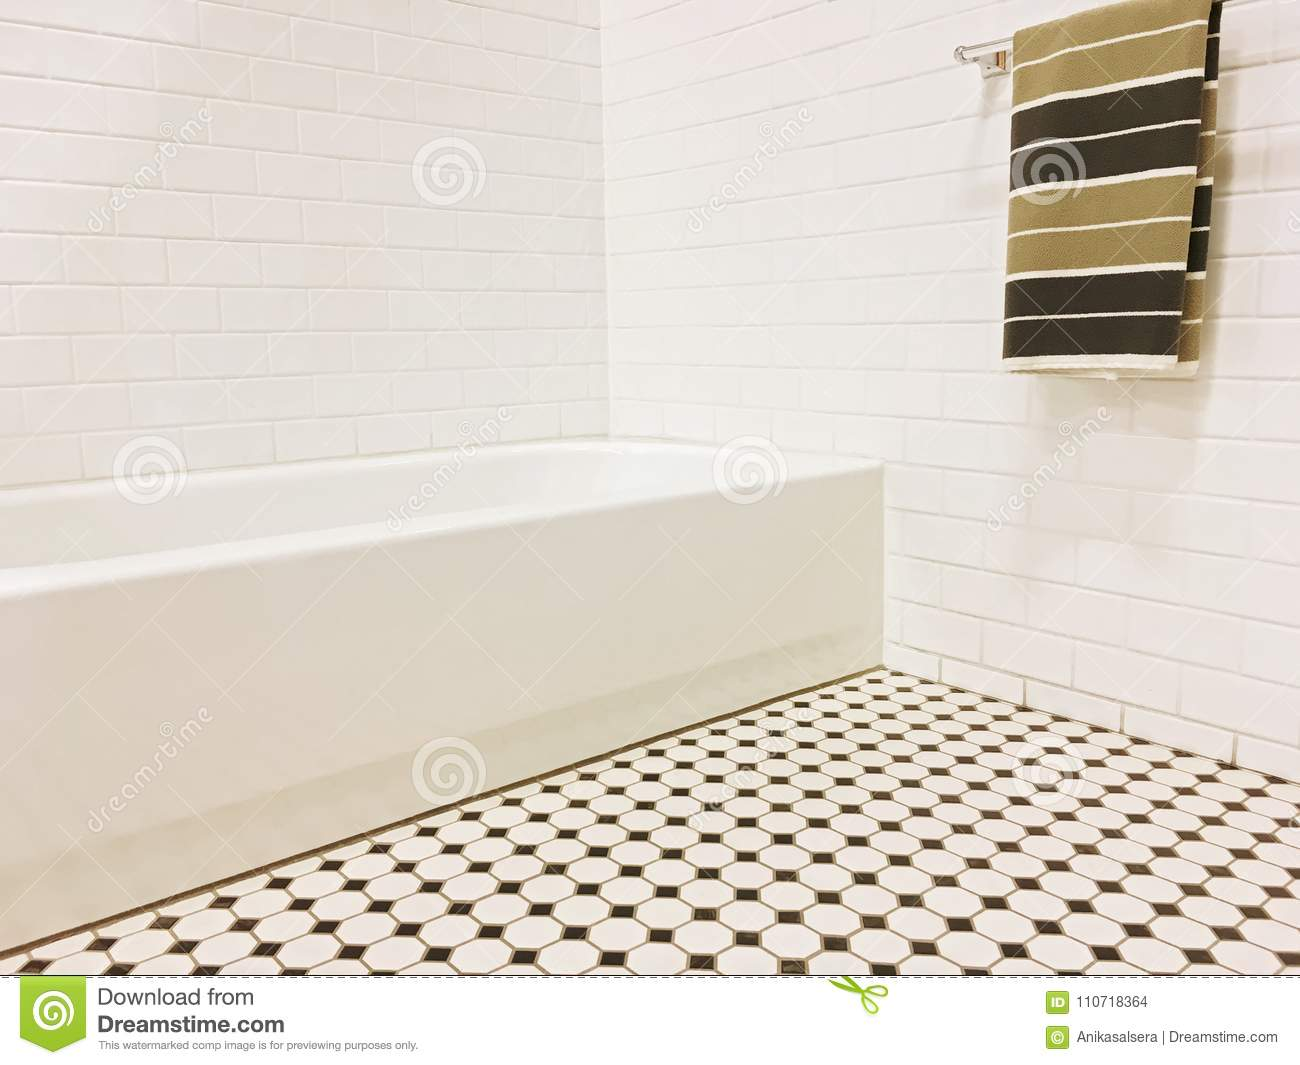 New Bathroom With Black And White Ceramic Tile Decor Stock Photo ...